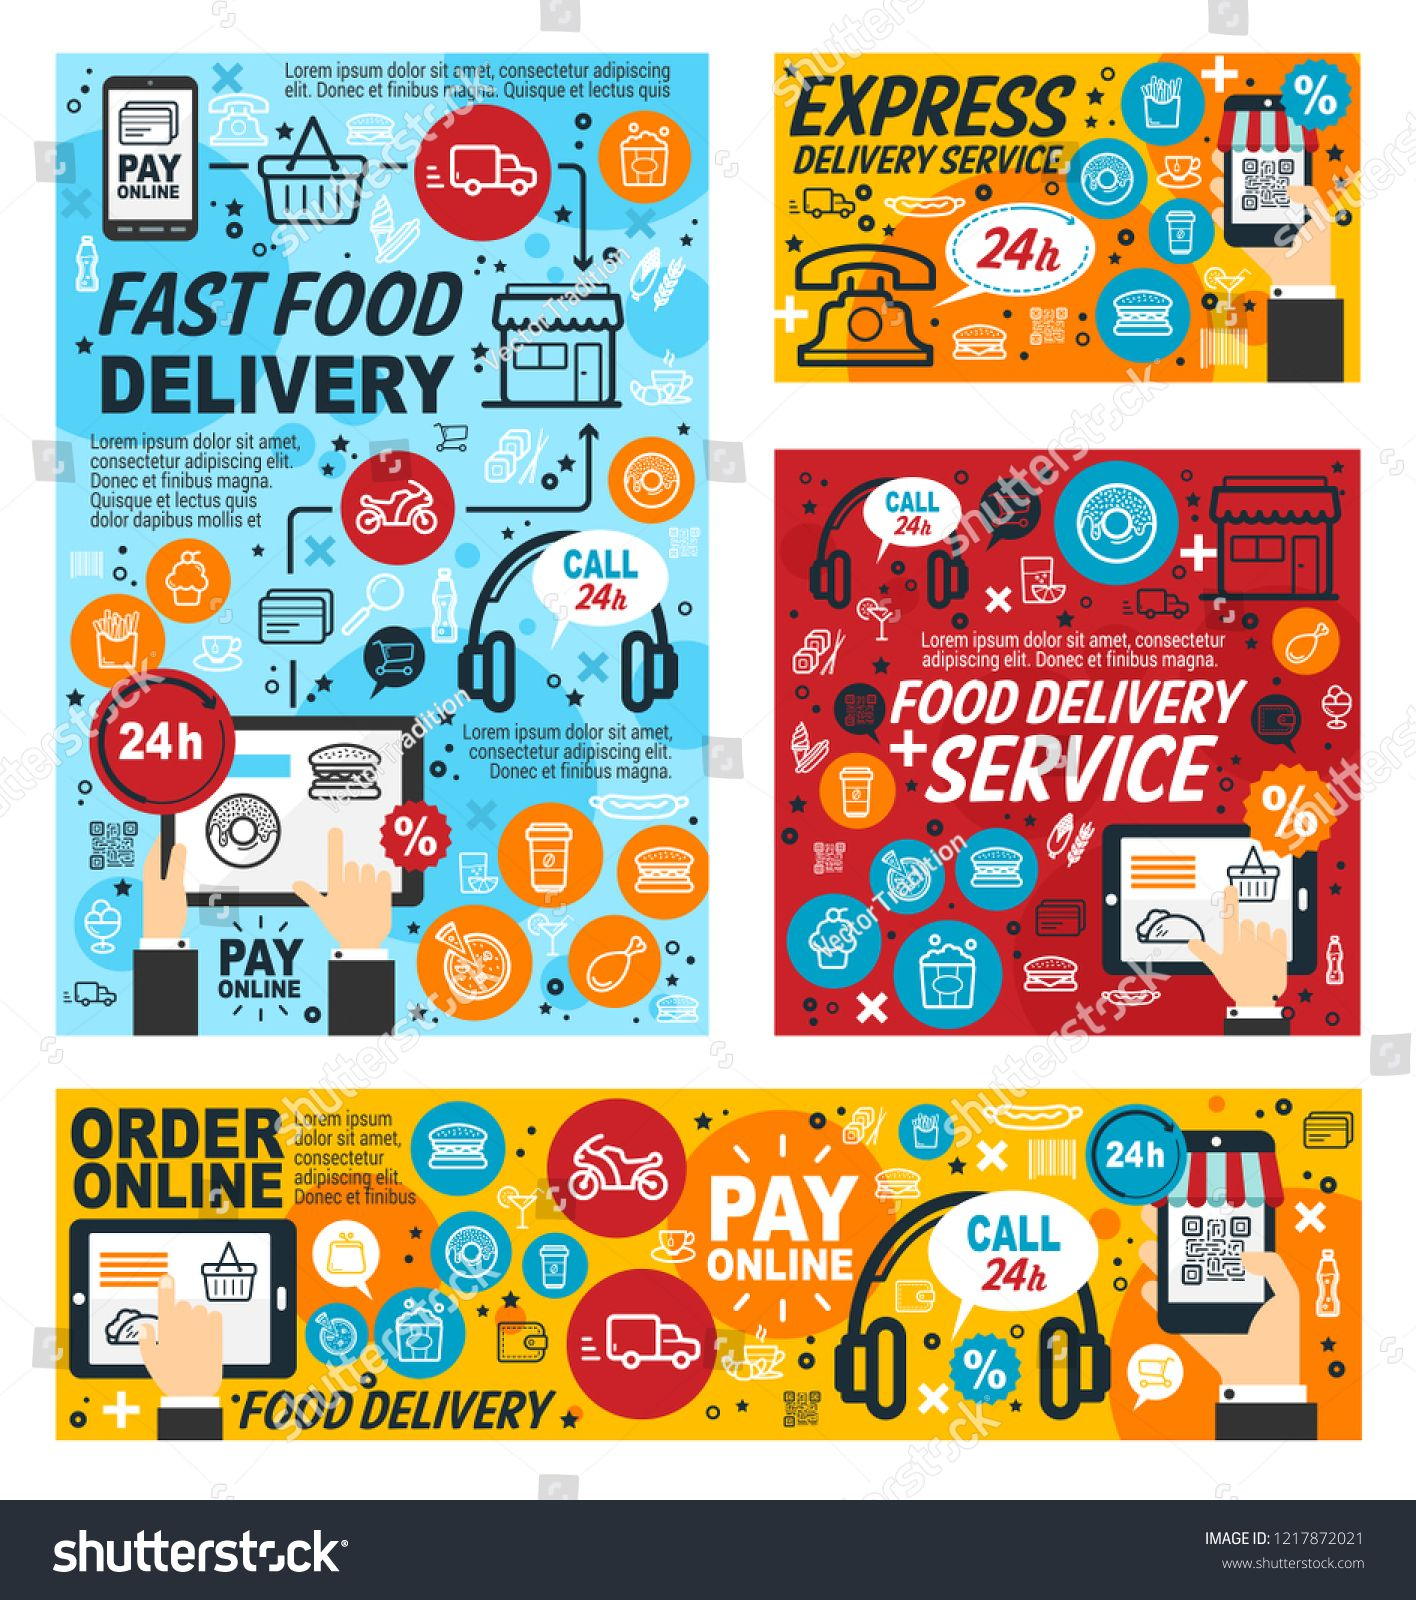 Fast food delivery service, online order of fastfood